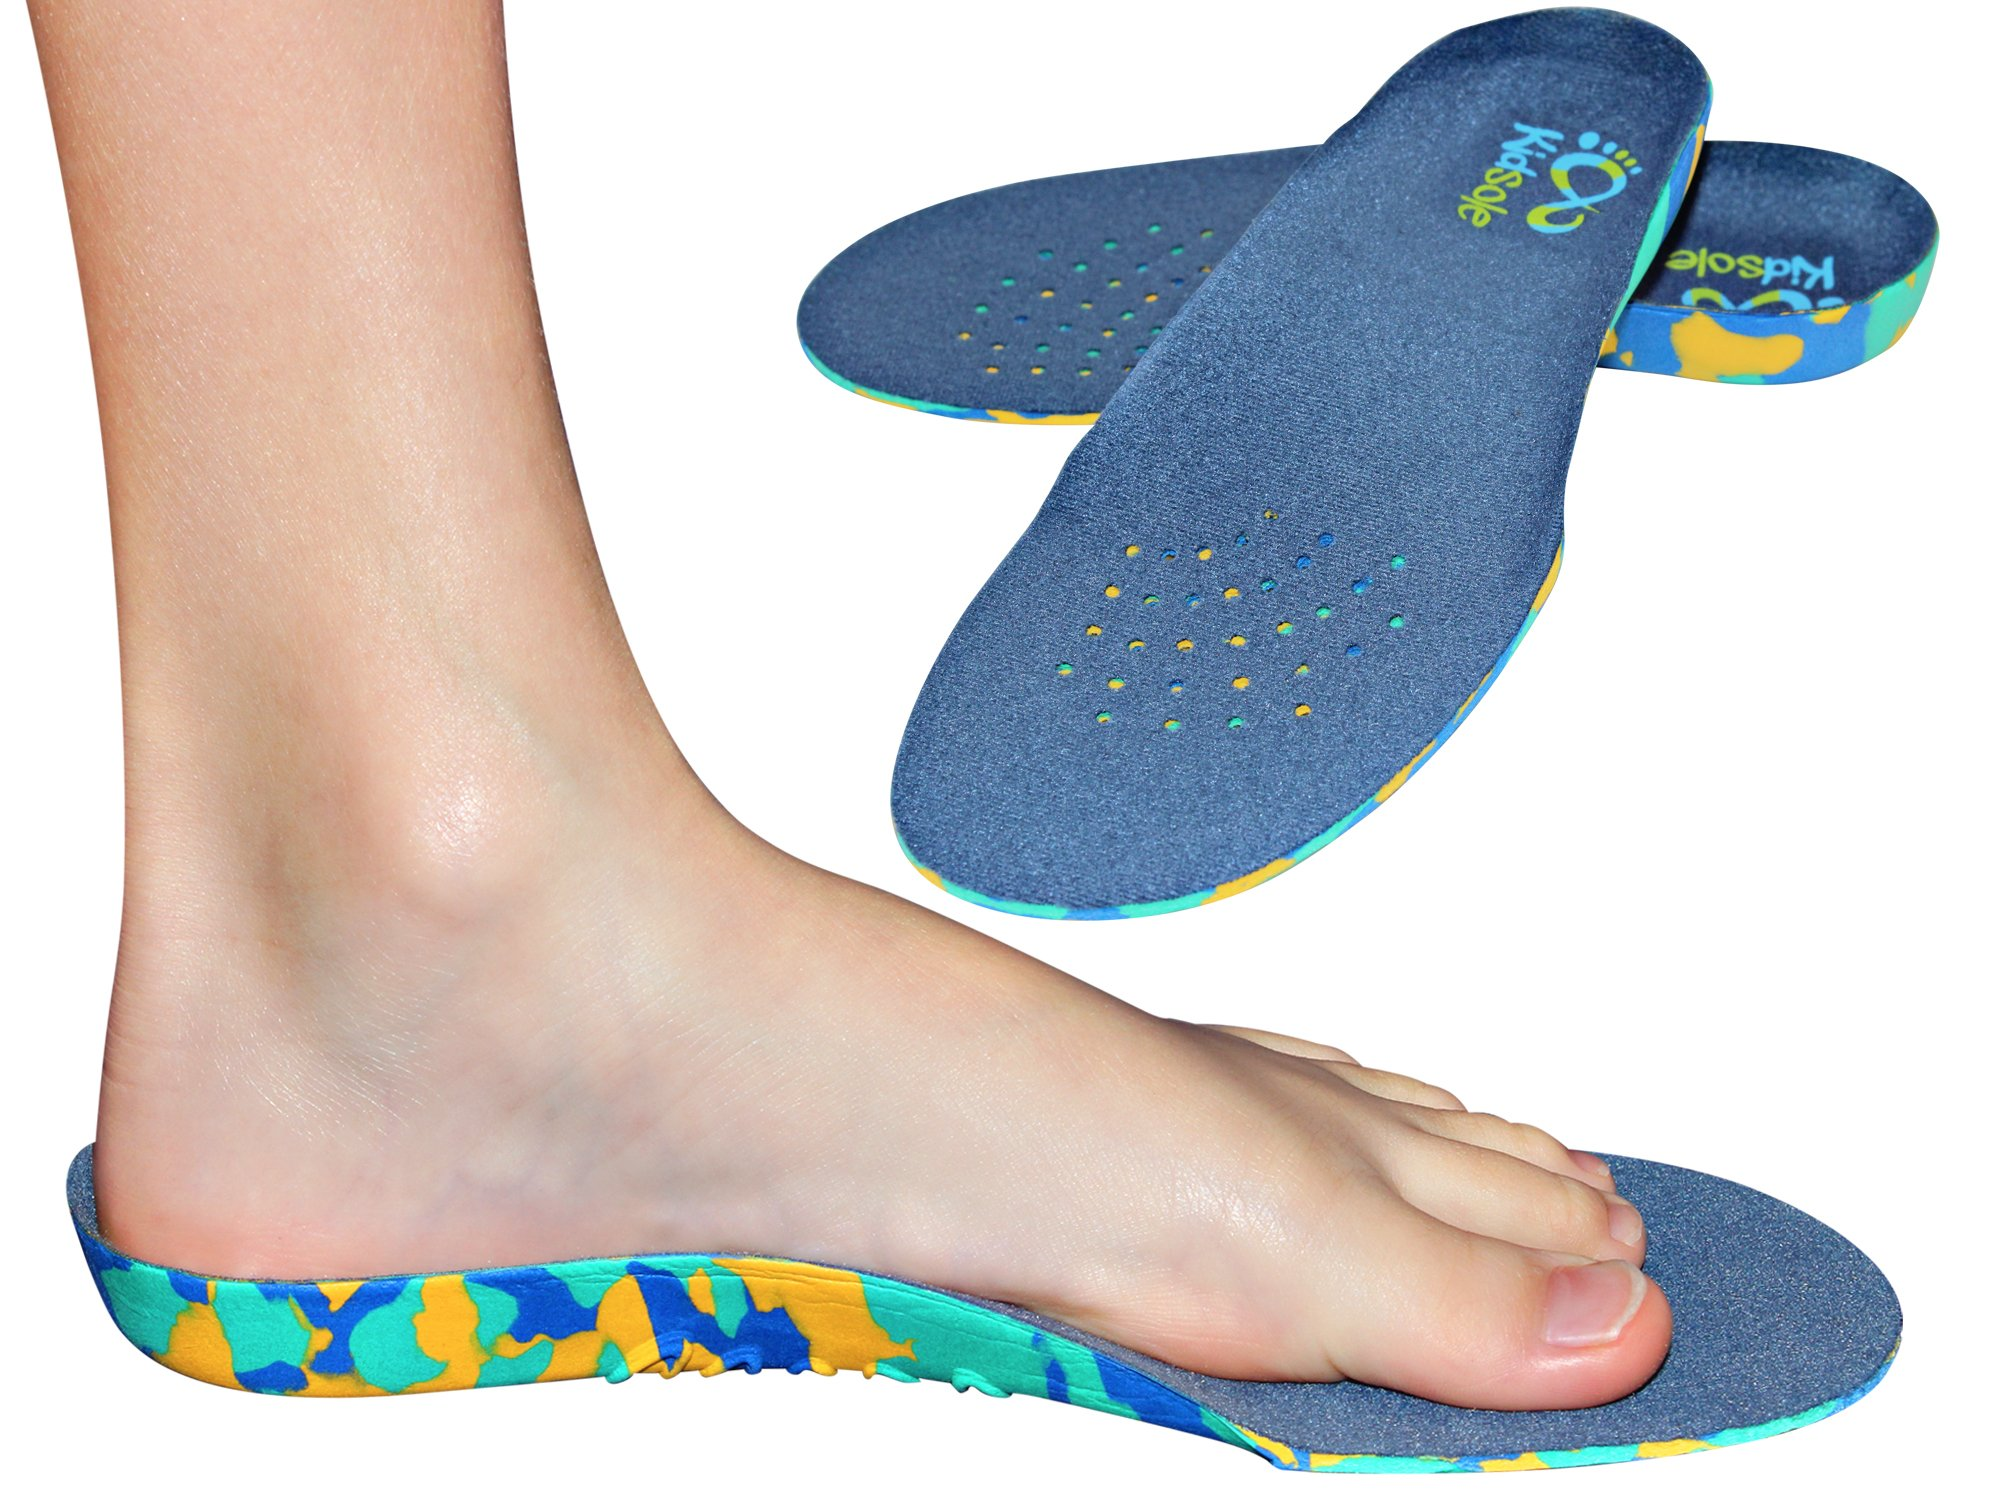 Flat feet in a child: the danger of this diagnosis